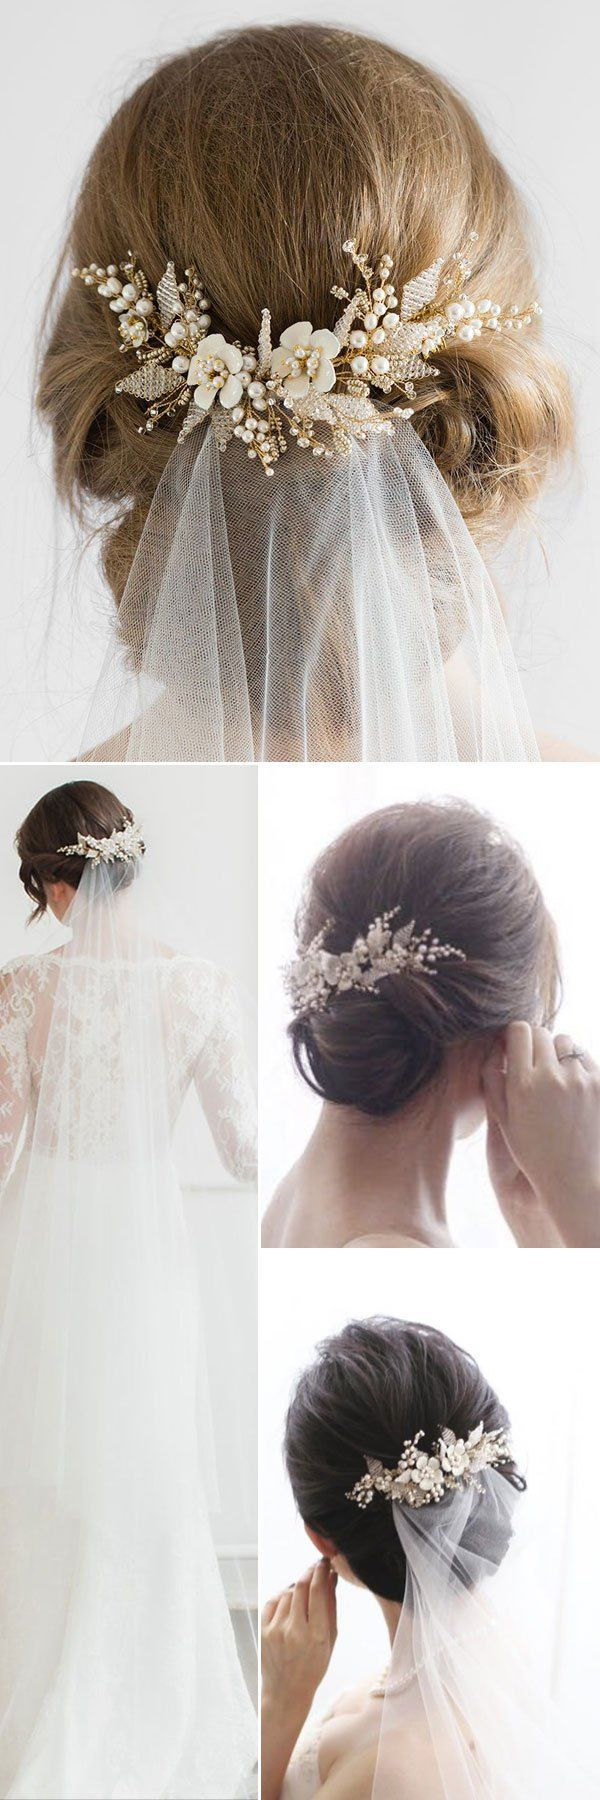 Top 20 wedding hairstyles with veil and accessories